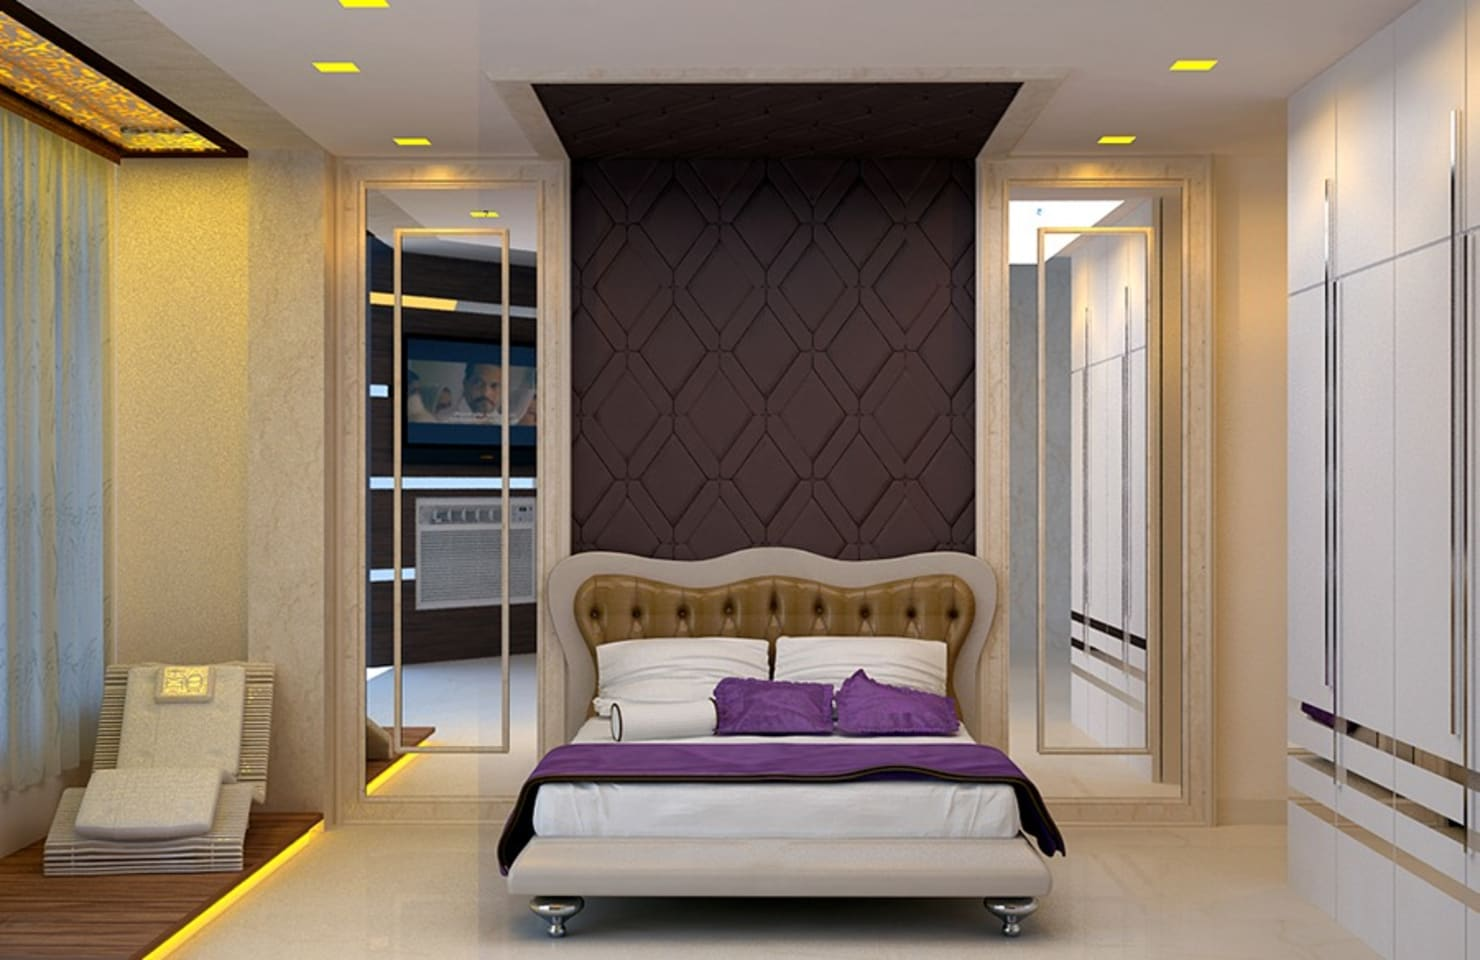 8 different bedroom concepts for Indian homes